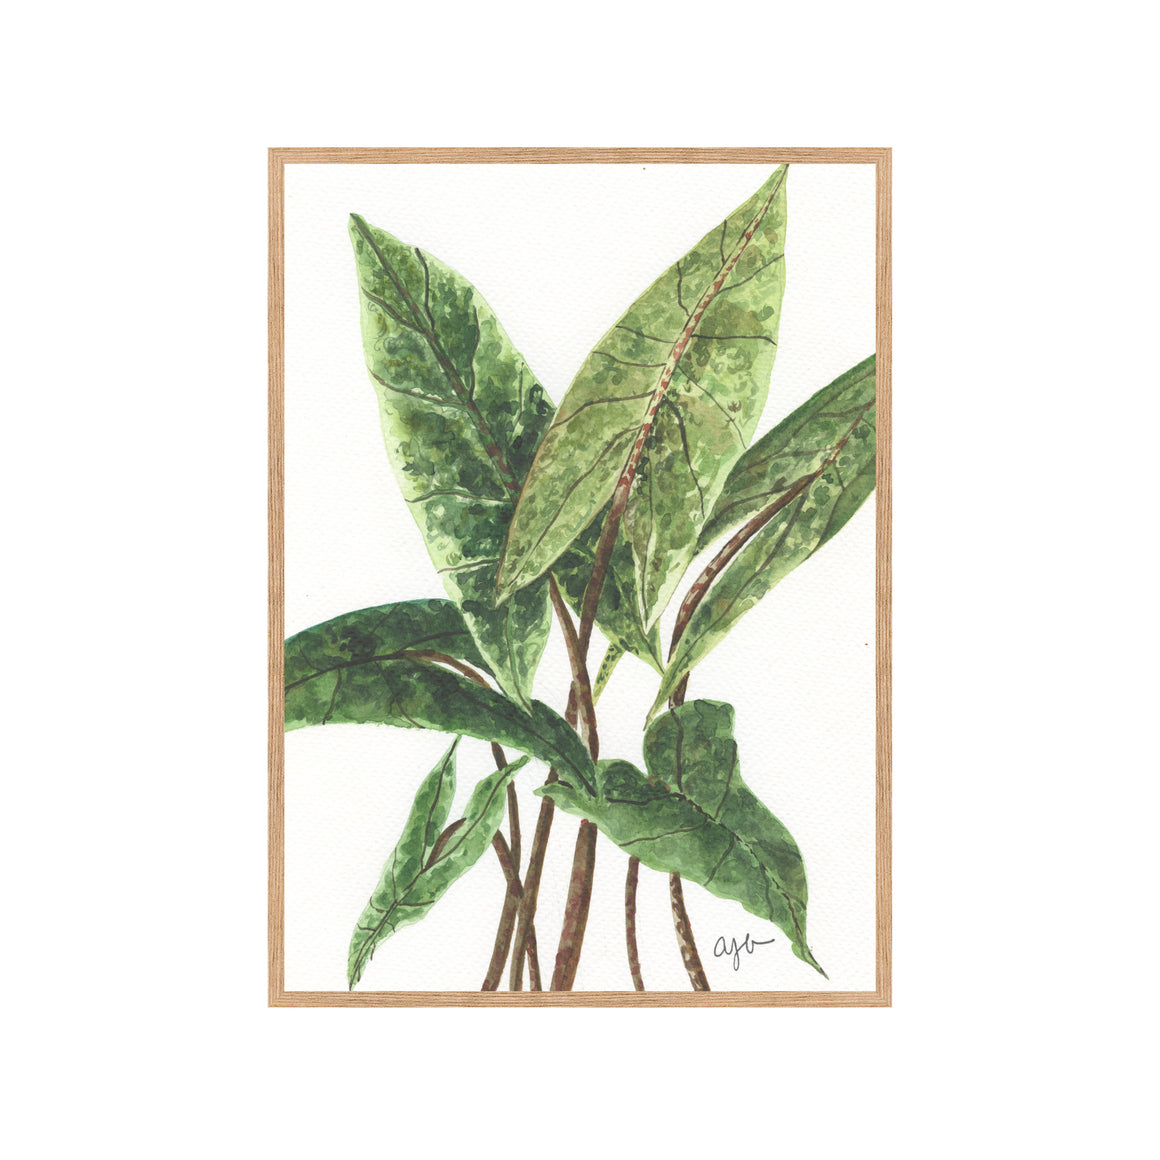 PLANT PORTRAIT NO. 1 Fine Art Watercolor Print